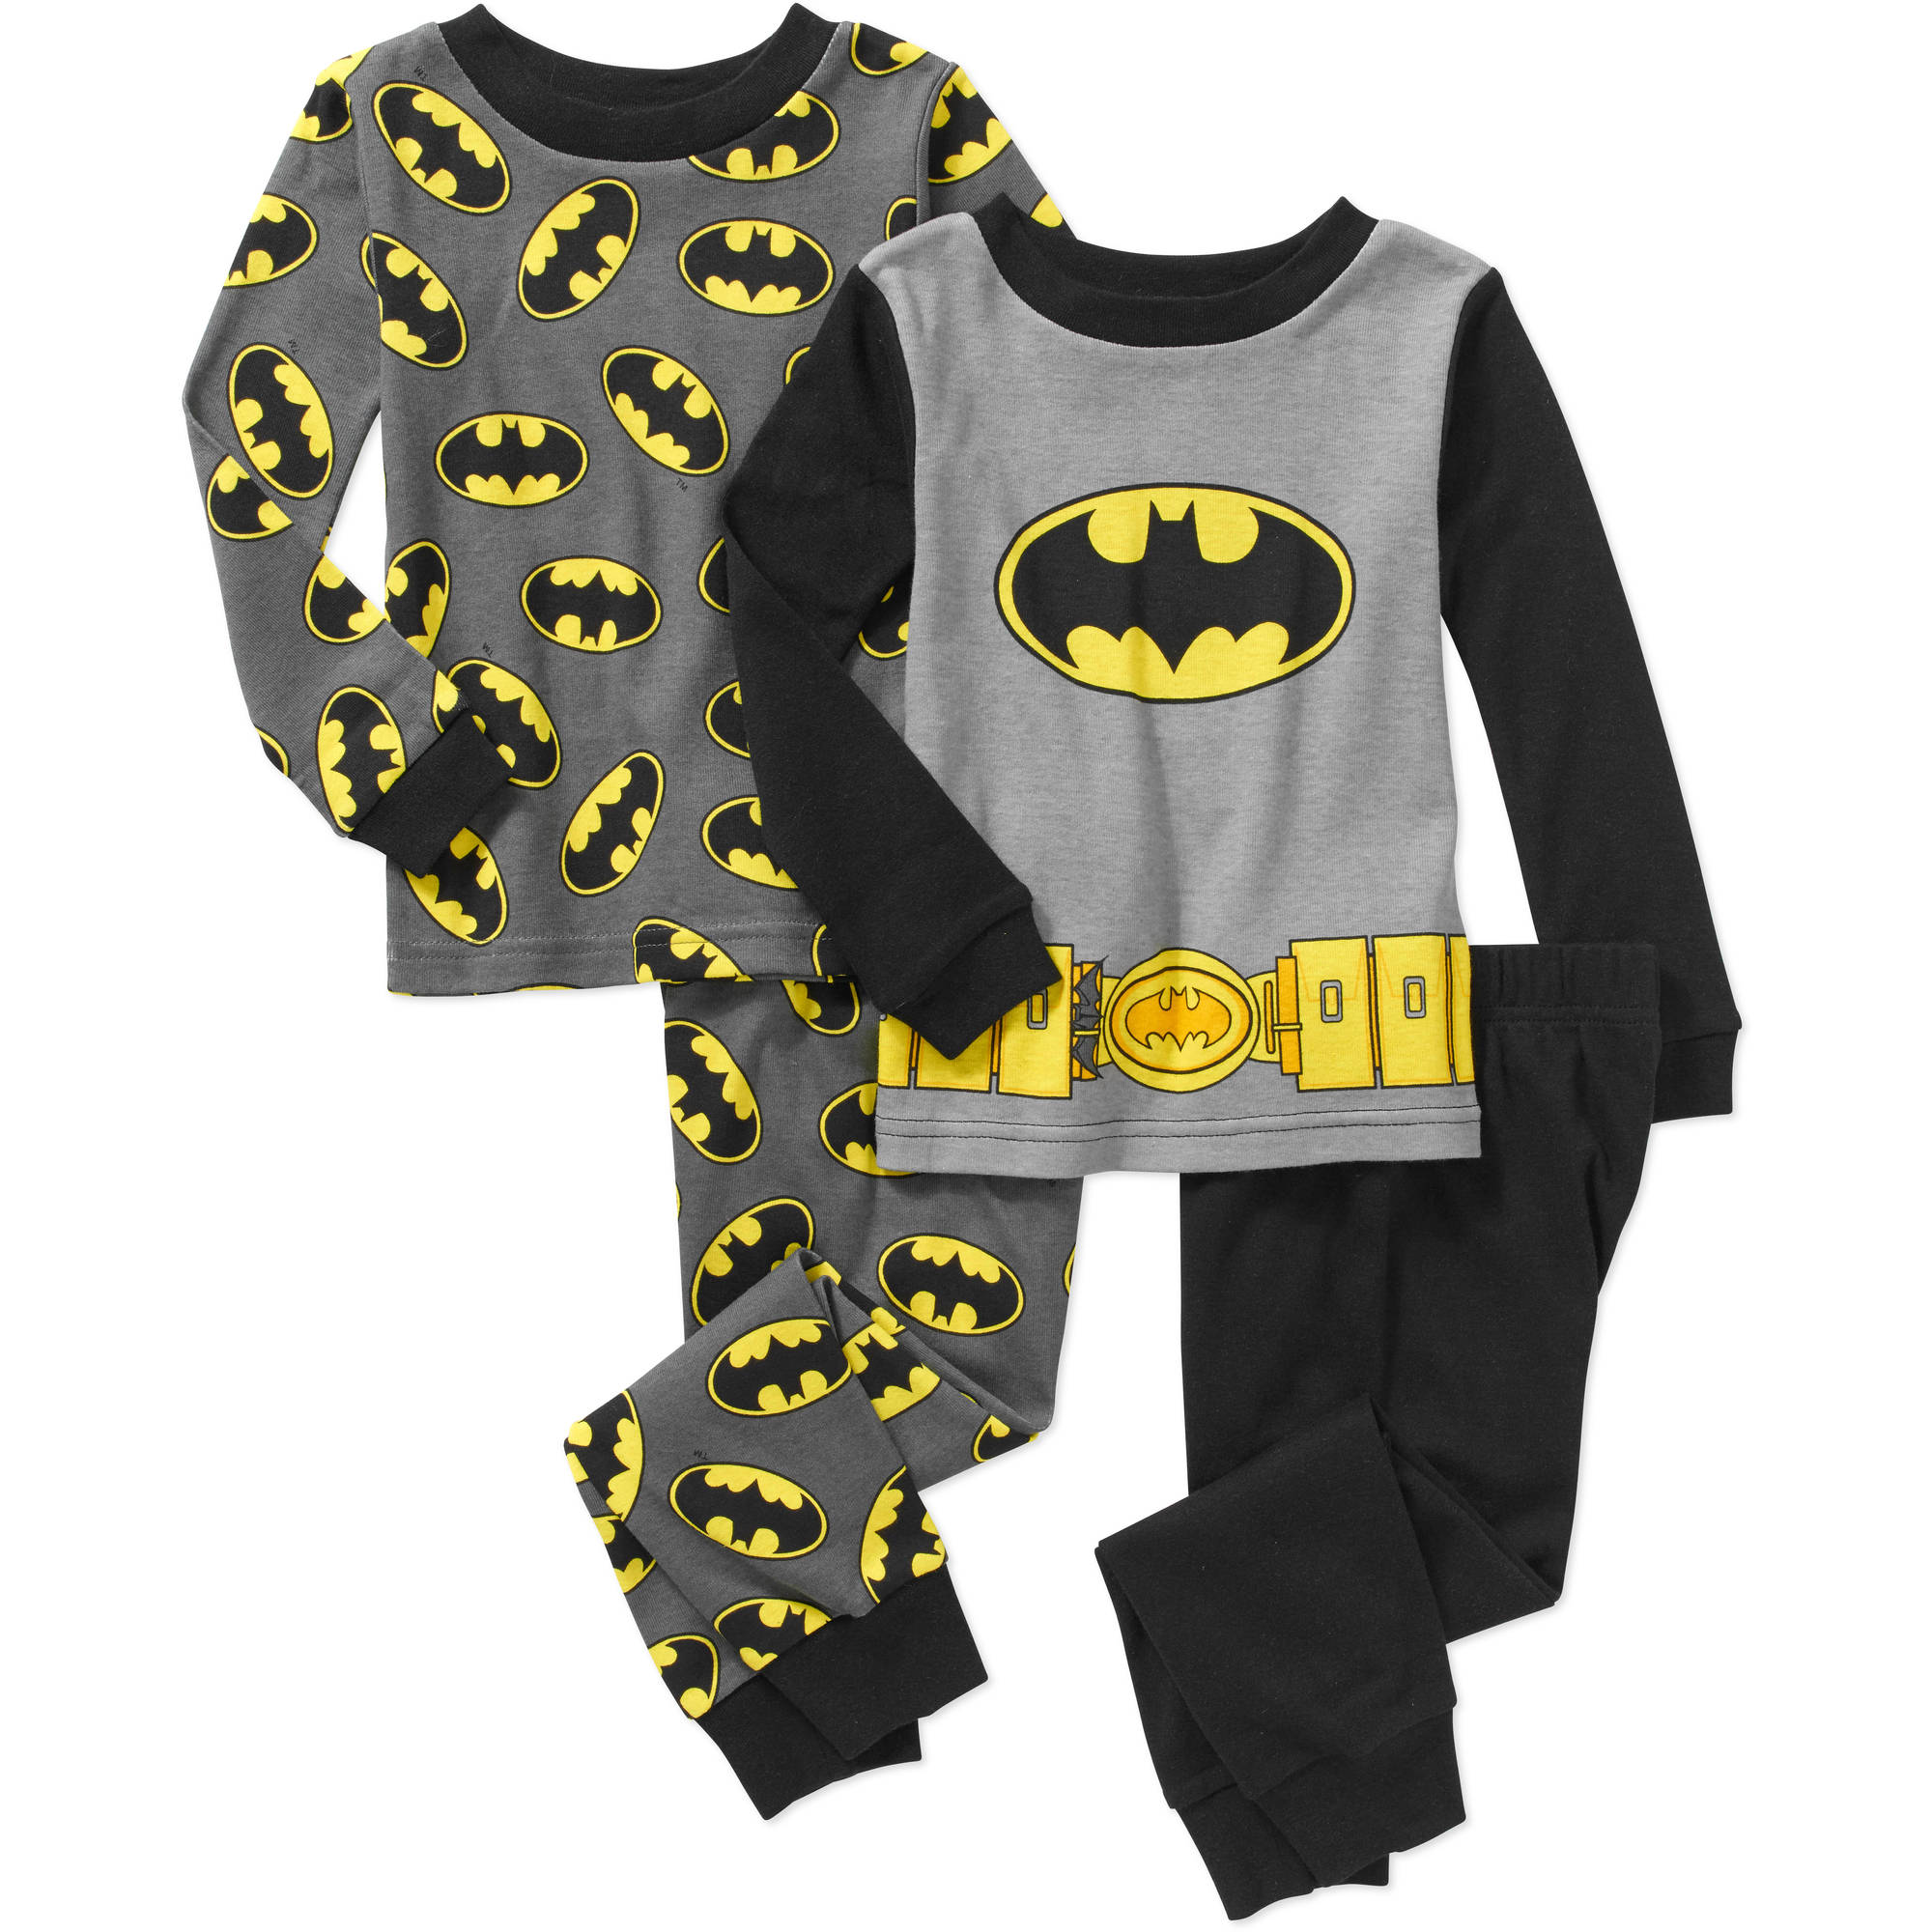 Ame Sleepwear Dc Comics Boys 2 Pc Batman Pajamas Sleepwear Set Black (6/7) Sold by MyLovebugRocky. $ DC Comics Baby Boys Batman Born Hero Long Sleeve Pajama Set - 9 Months. Sold by MyLovebugRocky. $ Batman Toddler Boys' Muscle Shirt & Shorts - .